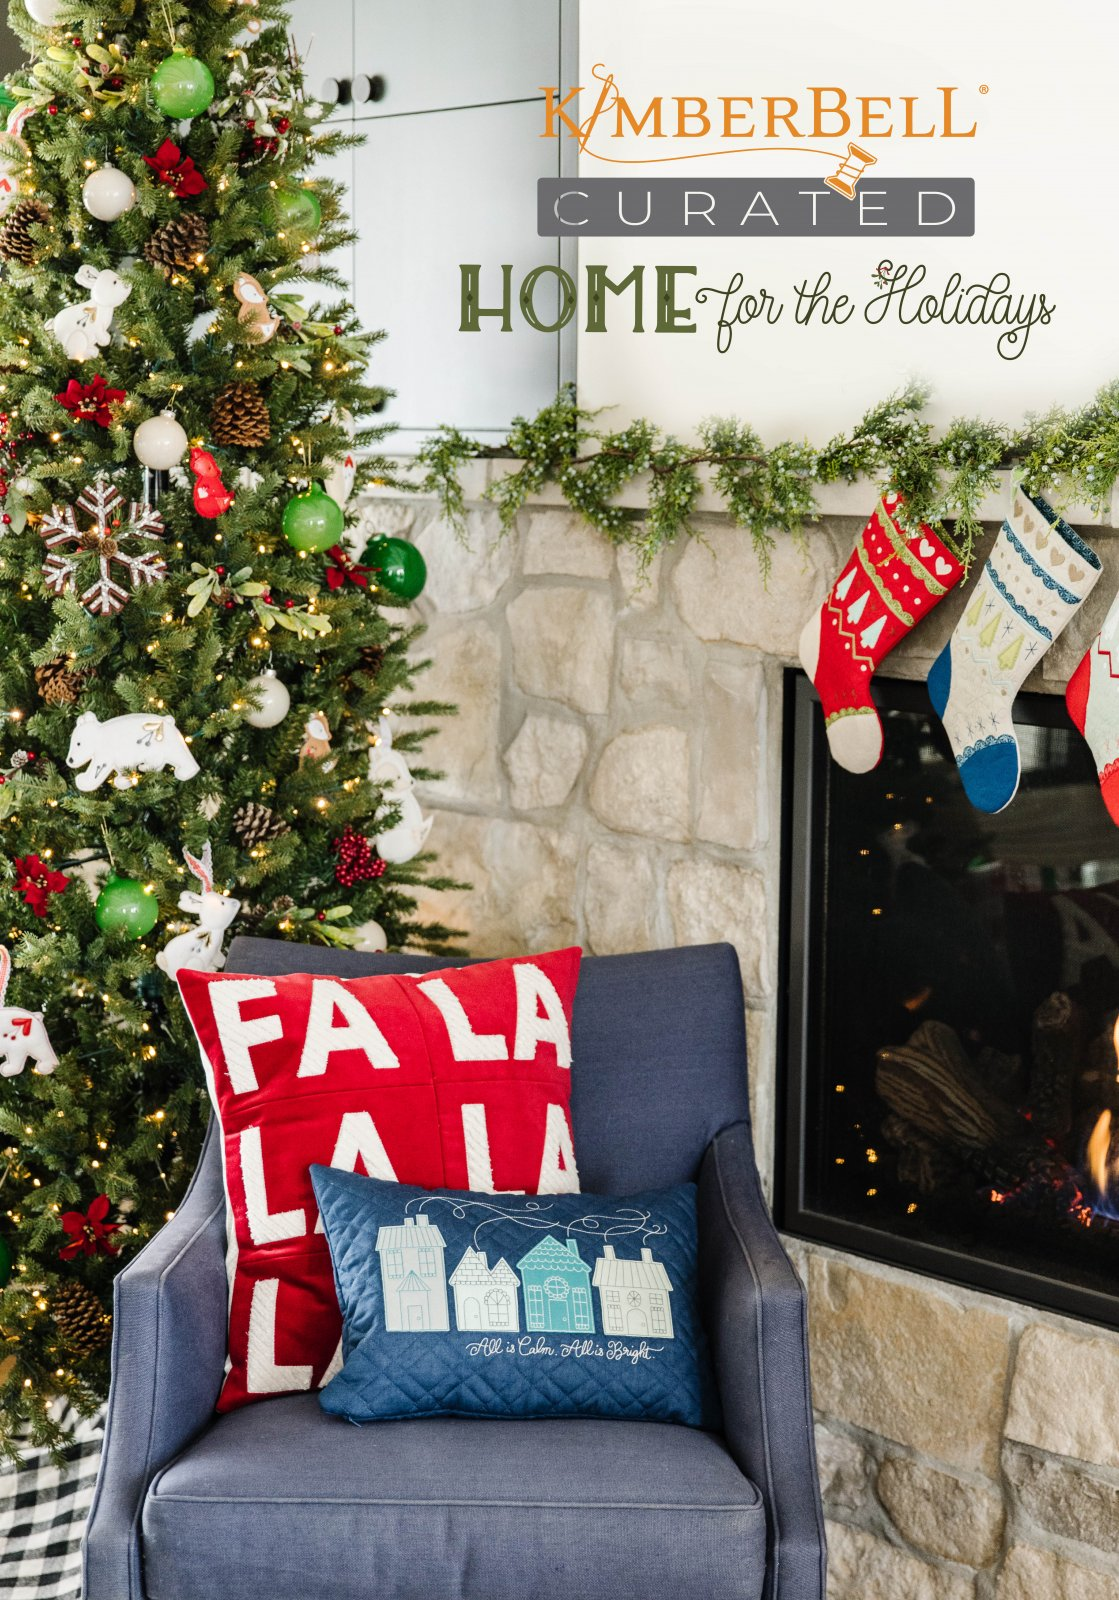 Kimberbell Curated Home for the Holidays Embroidery Design Collection